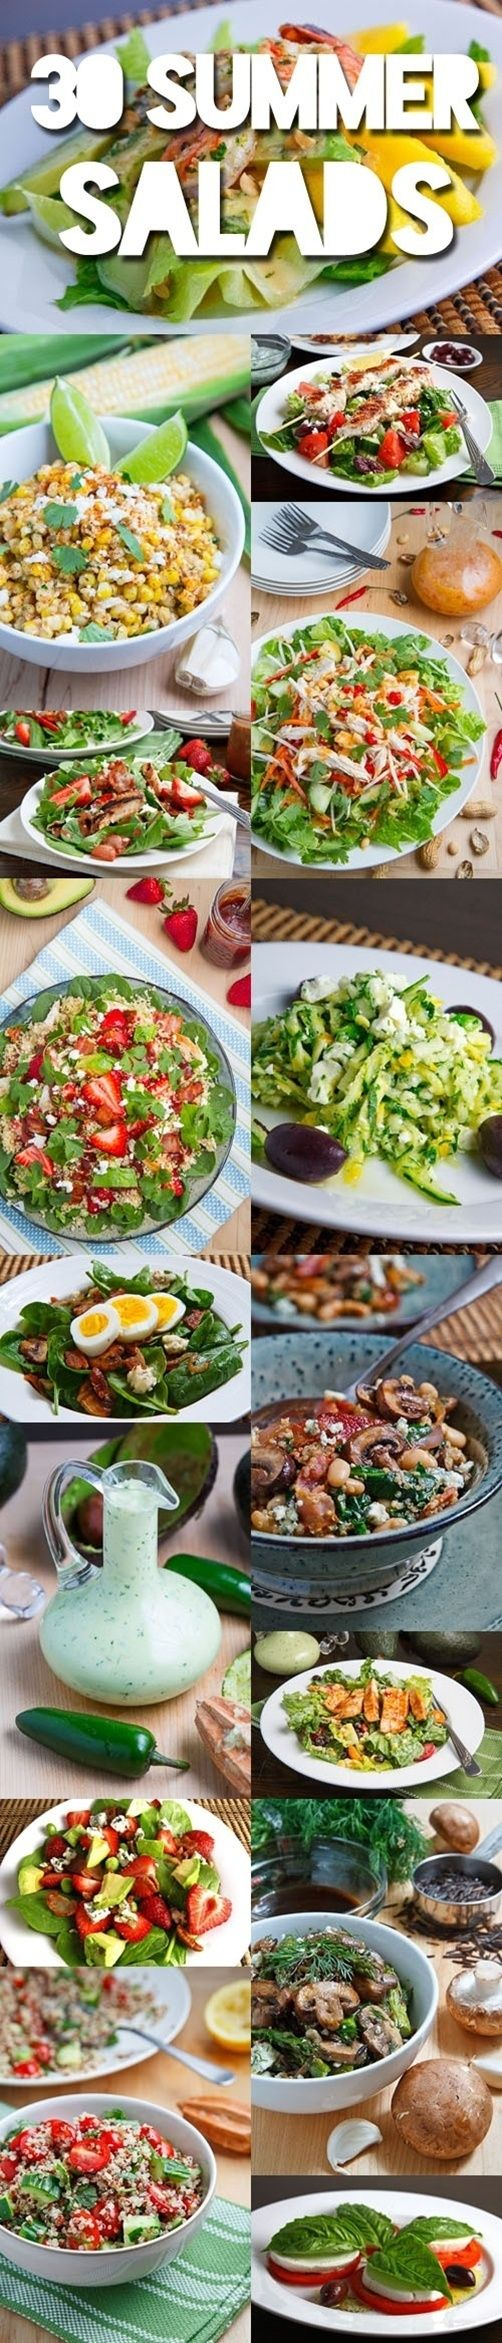 Something healthy! 30 Summer Salads, try these!! // Chicken : https://www.zayconfresh.com/campaign/30